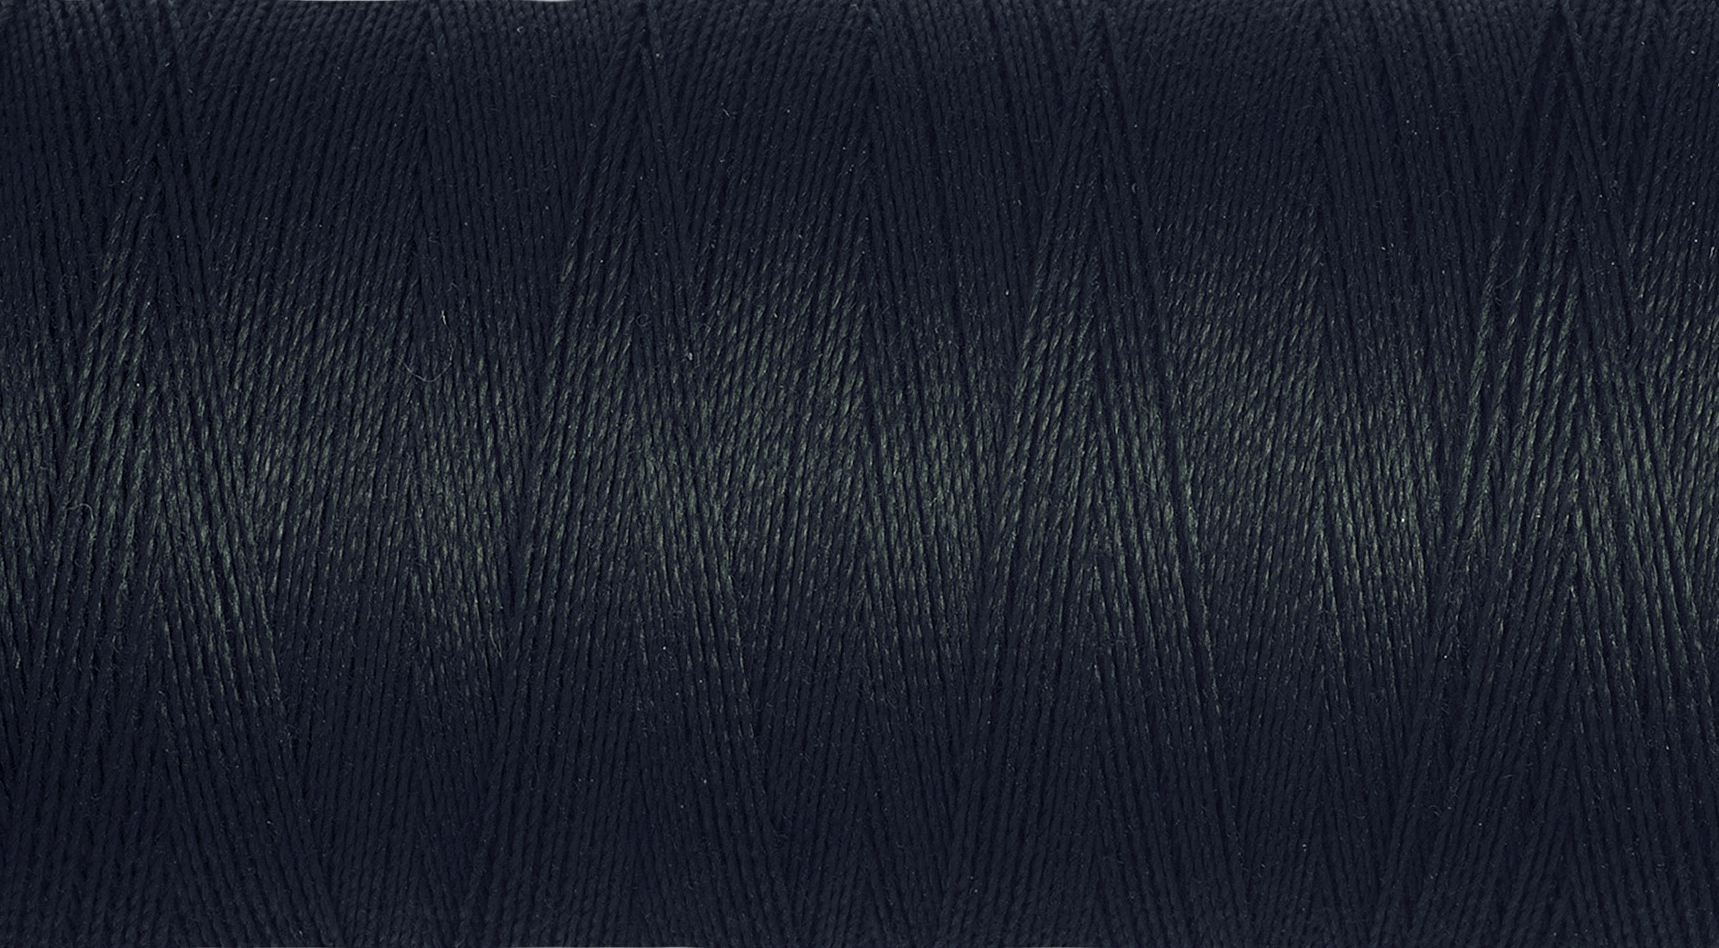 Picture of Sew-All Thread: 250m: Black (000)